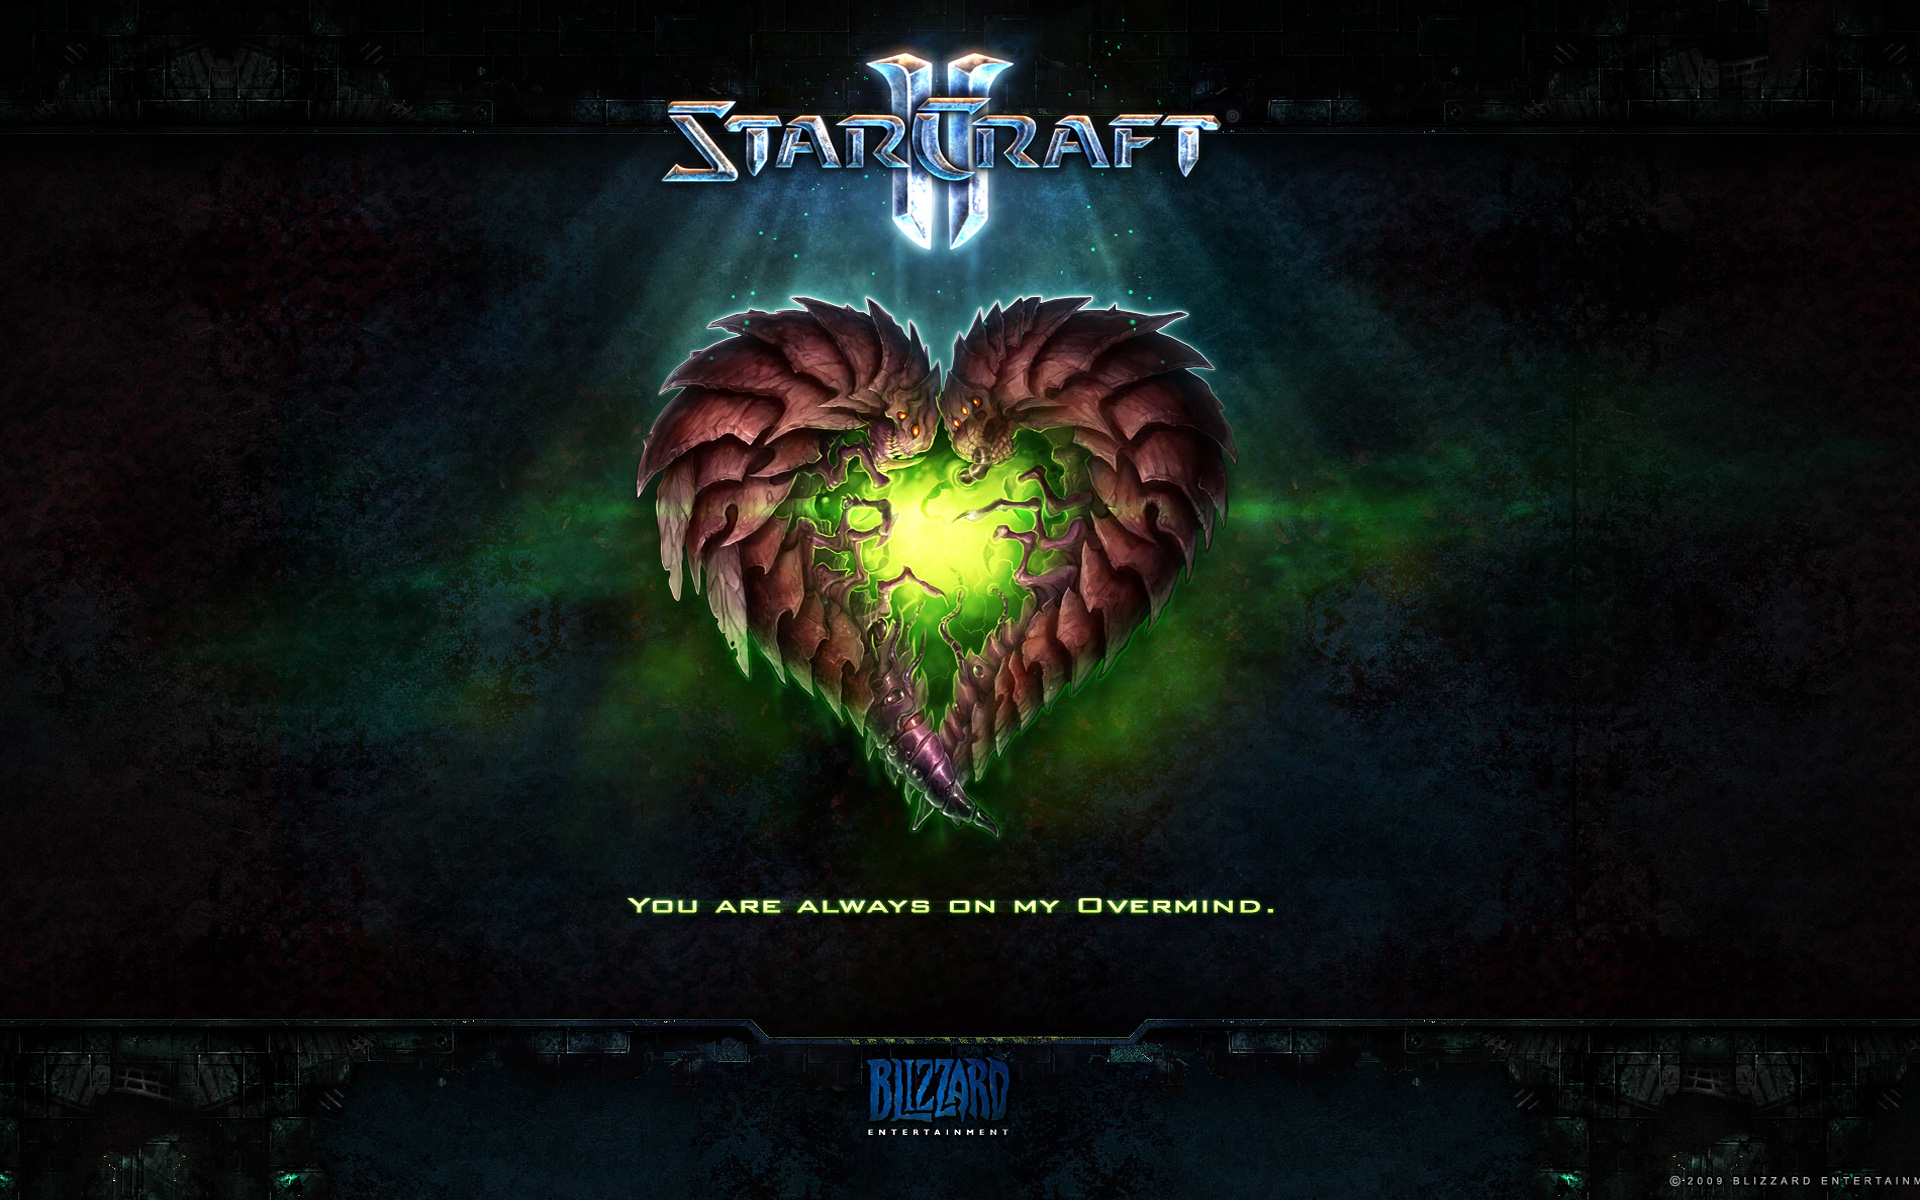 StarCraft II 2010 Game Wallpapers HD Wallpapers 1920x1200